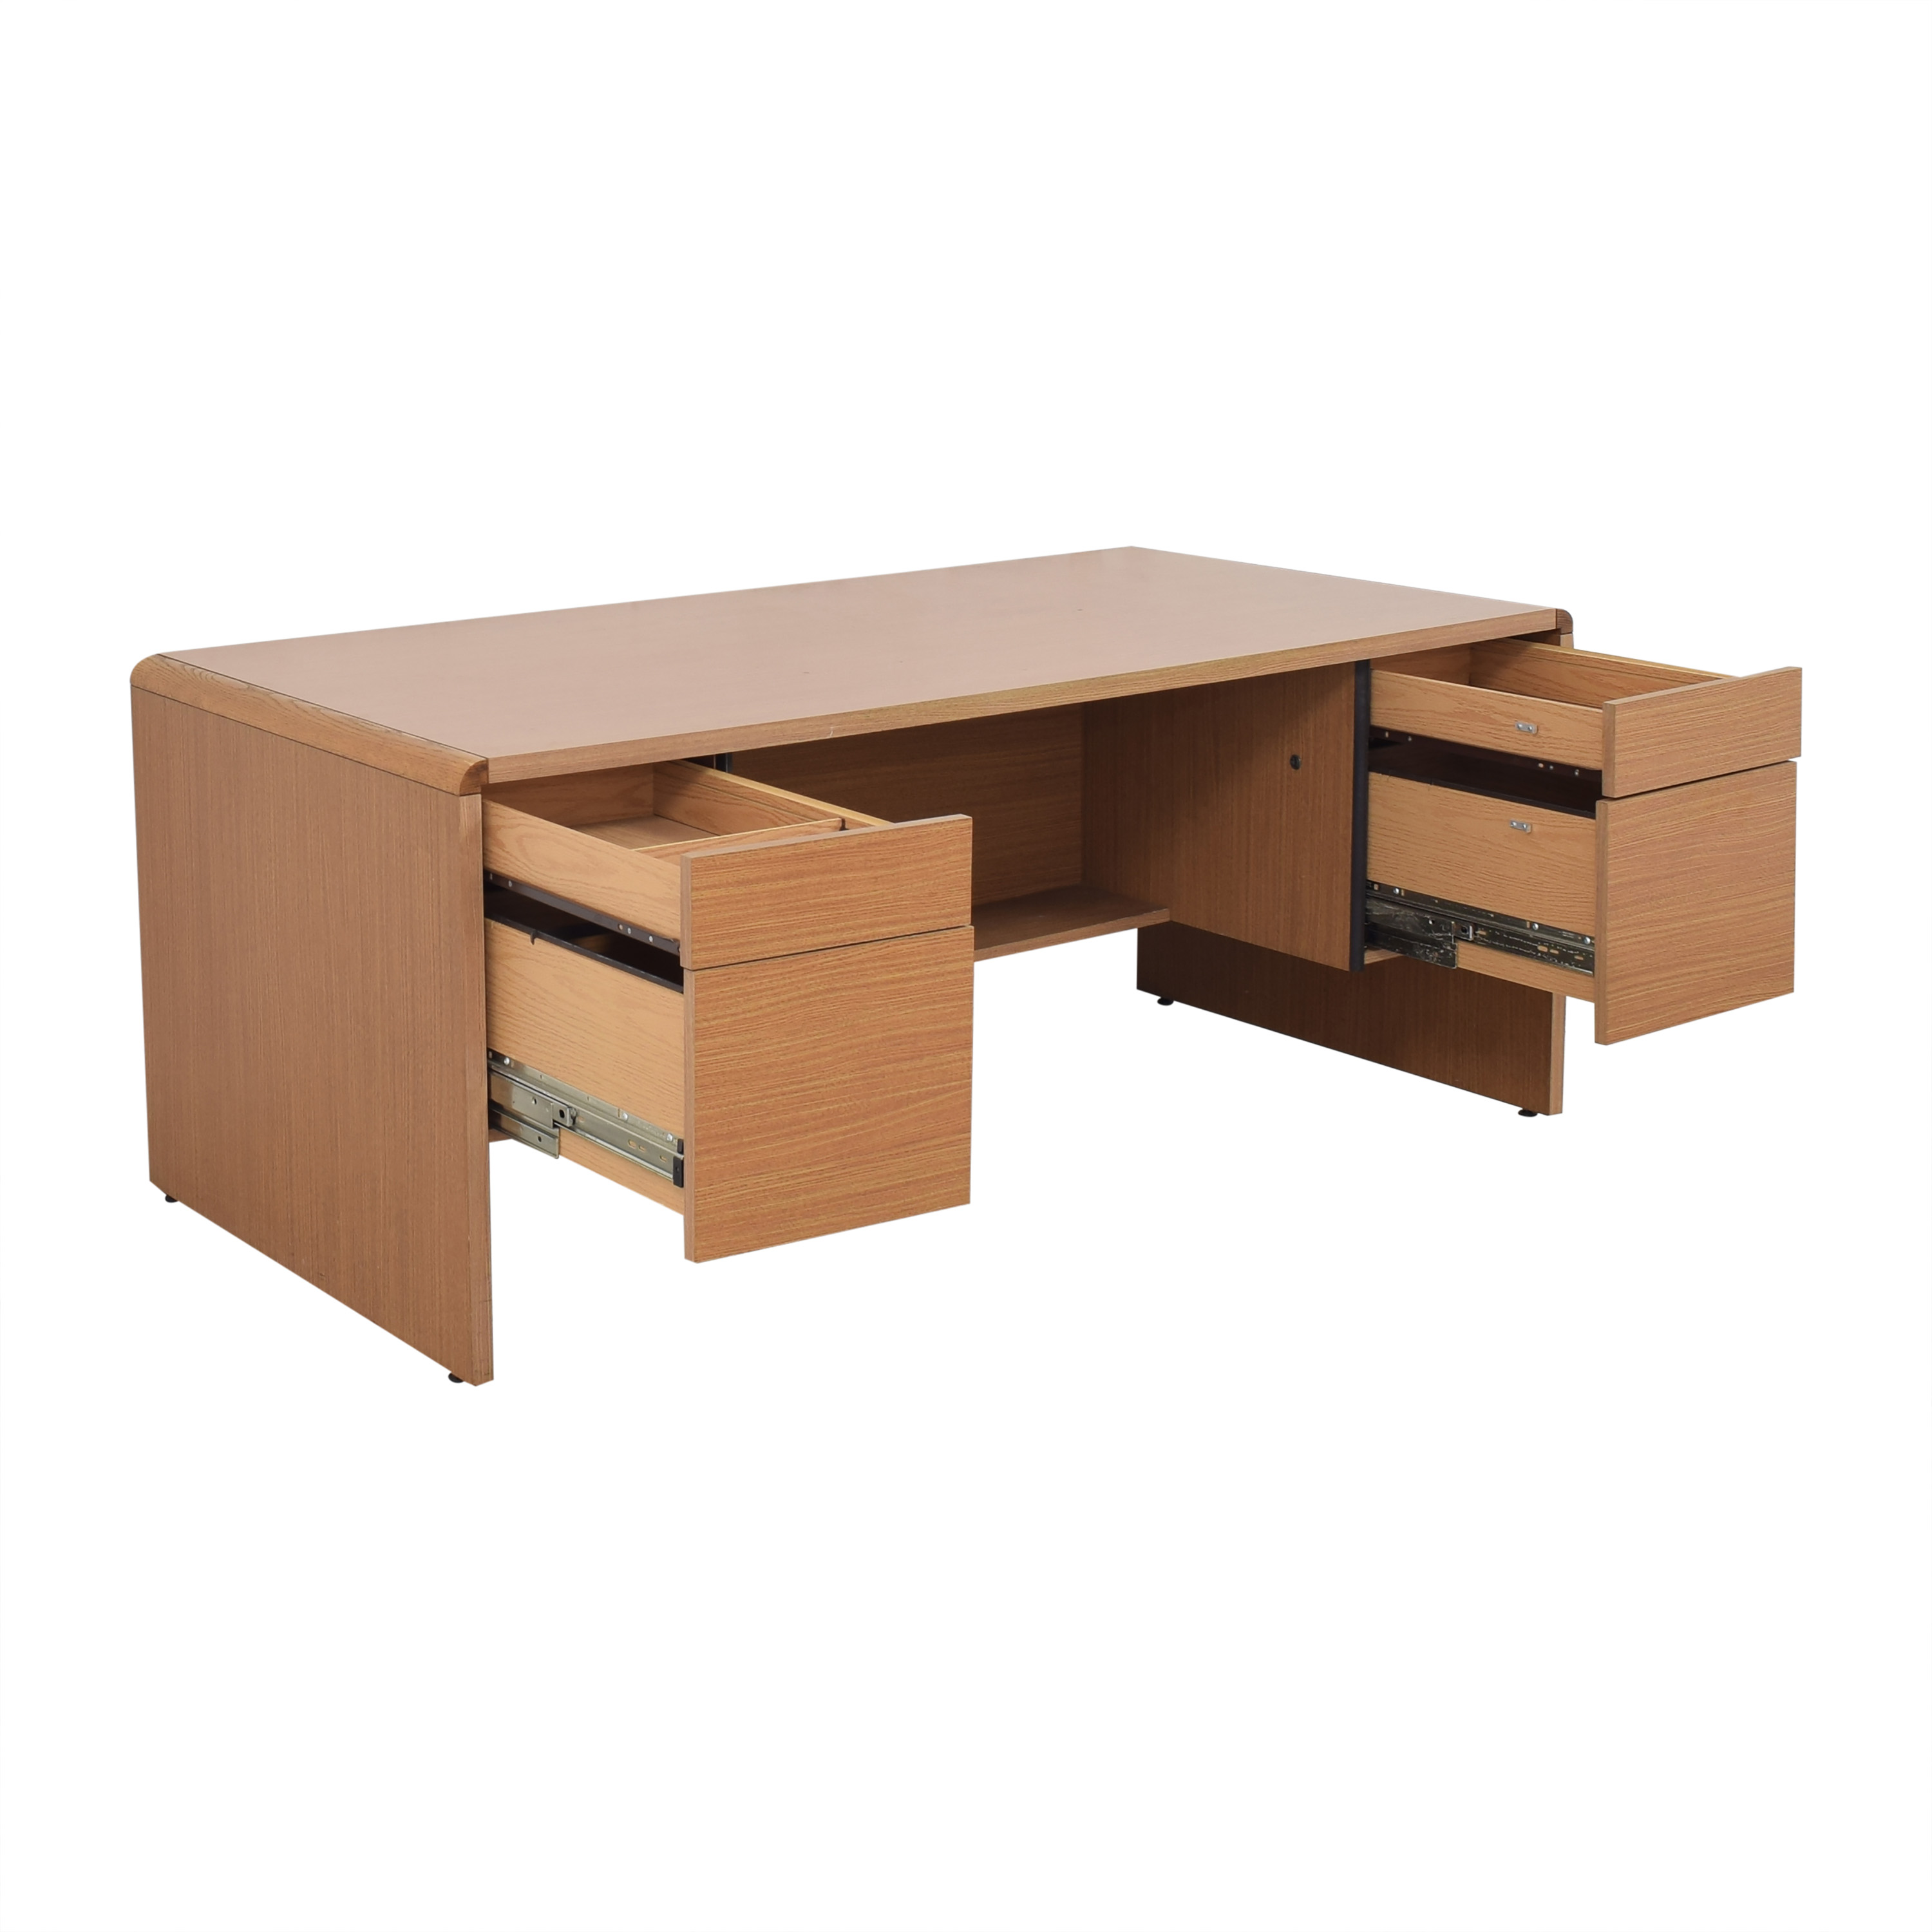 Hon Hon Double Pedestal Executive Desk brown